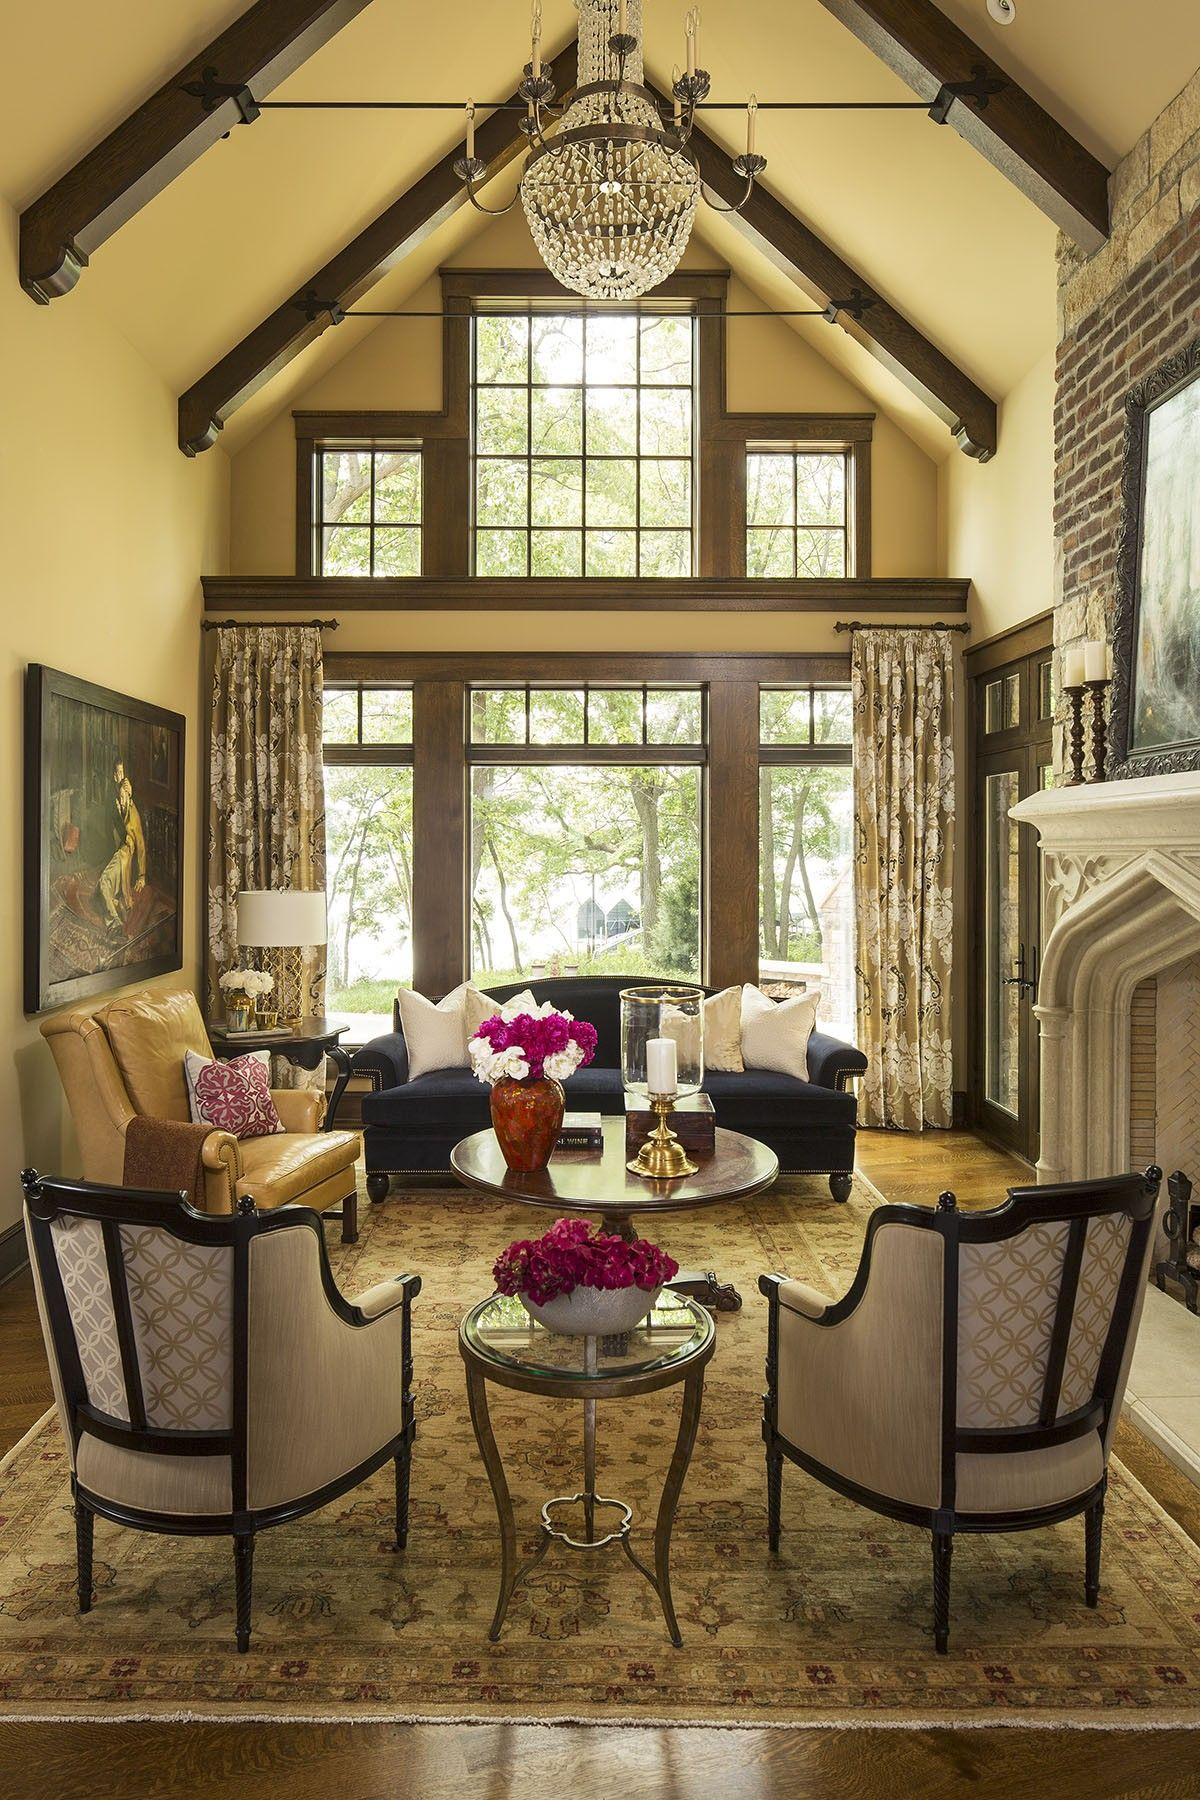 5 Beautiful Ways To Do Exposed Ceiling Beams | Beams, Living rooms ...